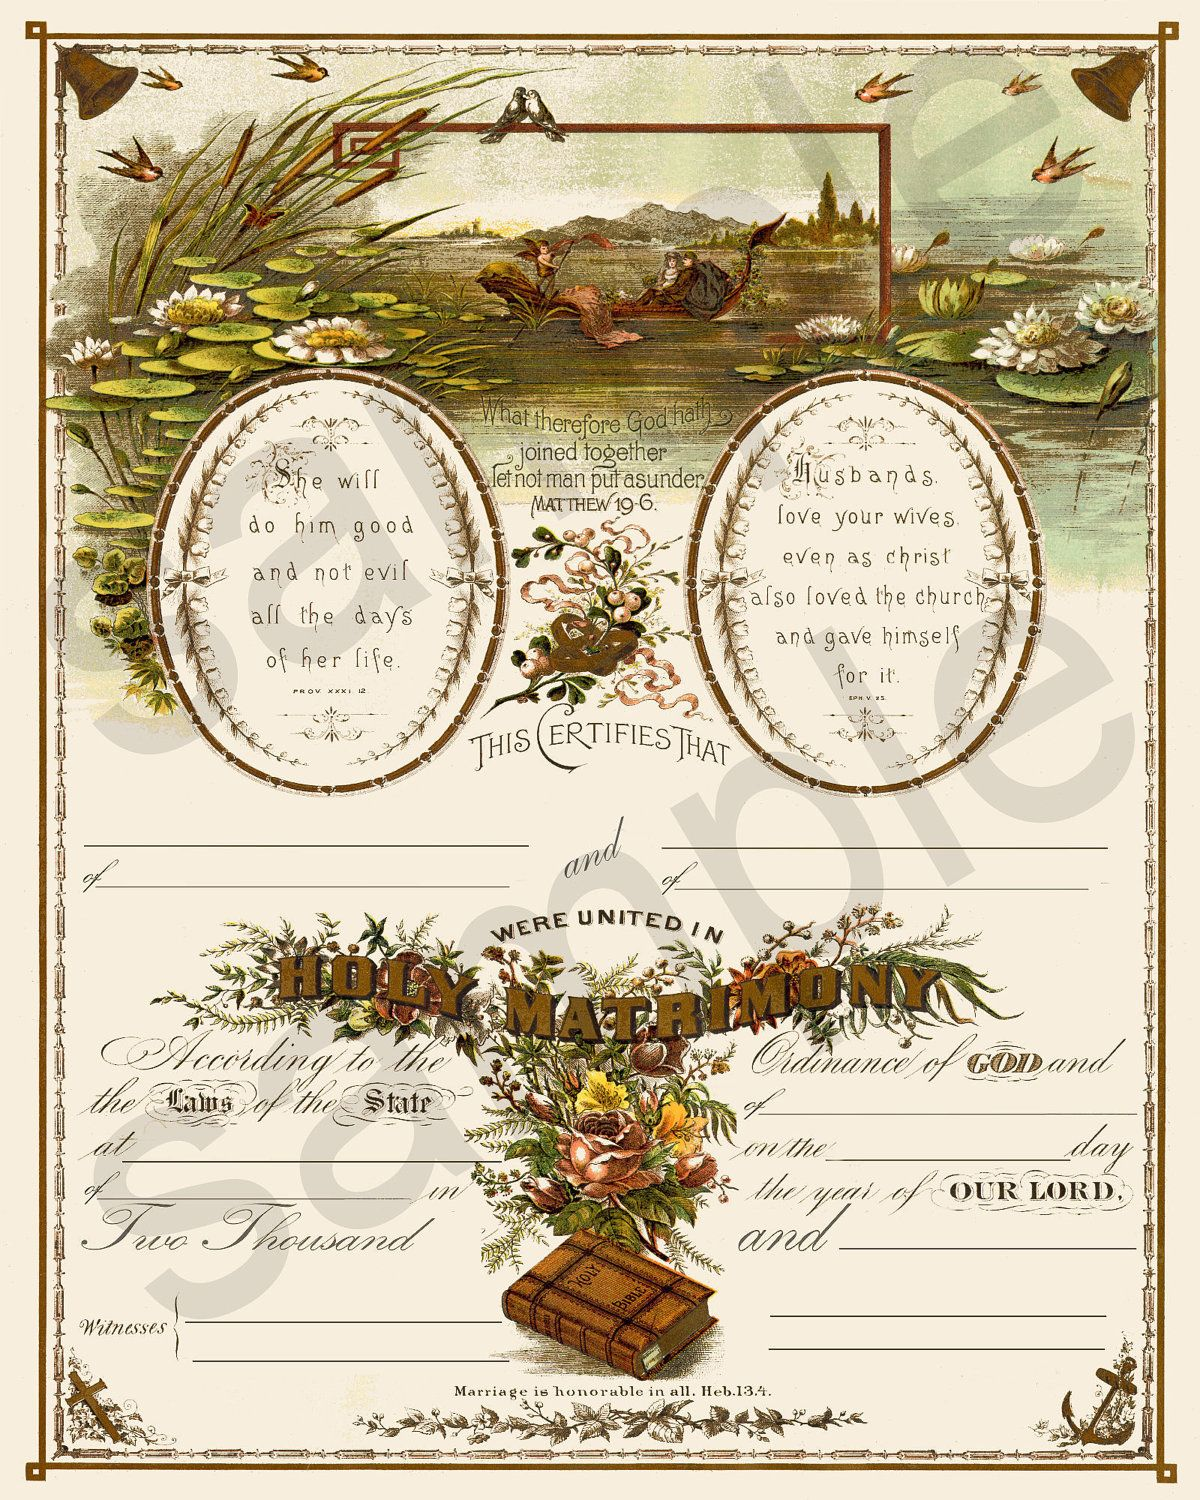 Beautiful Antique 19th Century Blank Marriage Certificate Etsy In 2020 Marriage Certificate Wedding Certificate Marriage